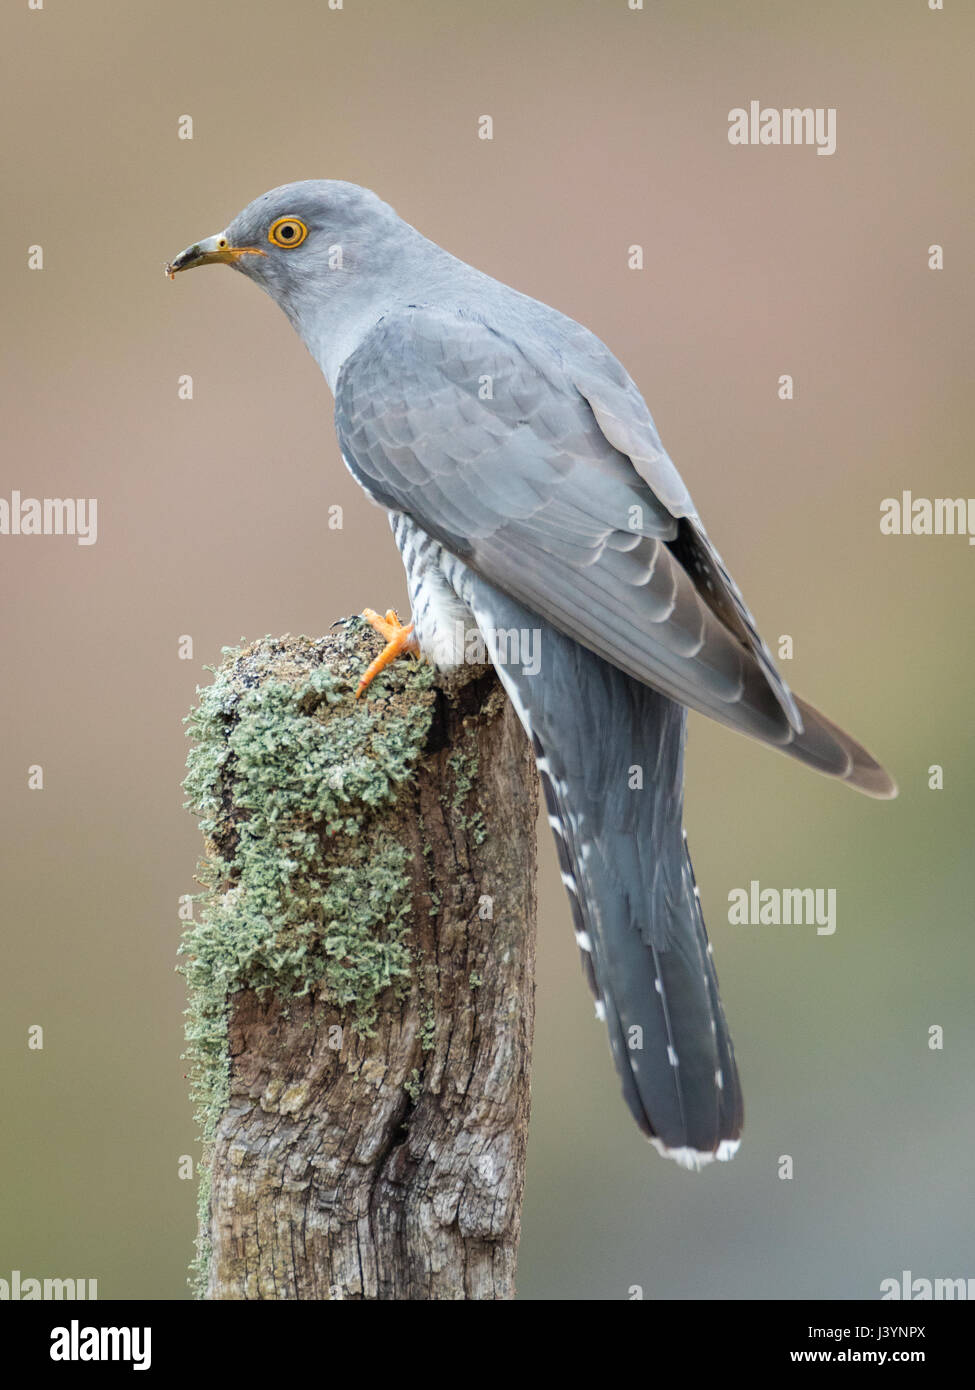 Male Cuckoo (Cuculus canorus) perched on a branch in the Brecon Beacons, Wales, UK - Stock Image